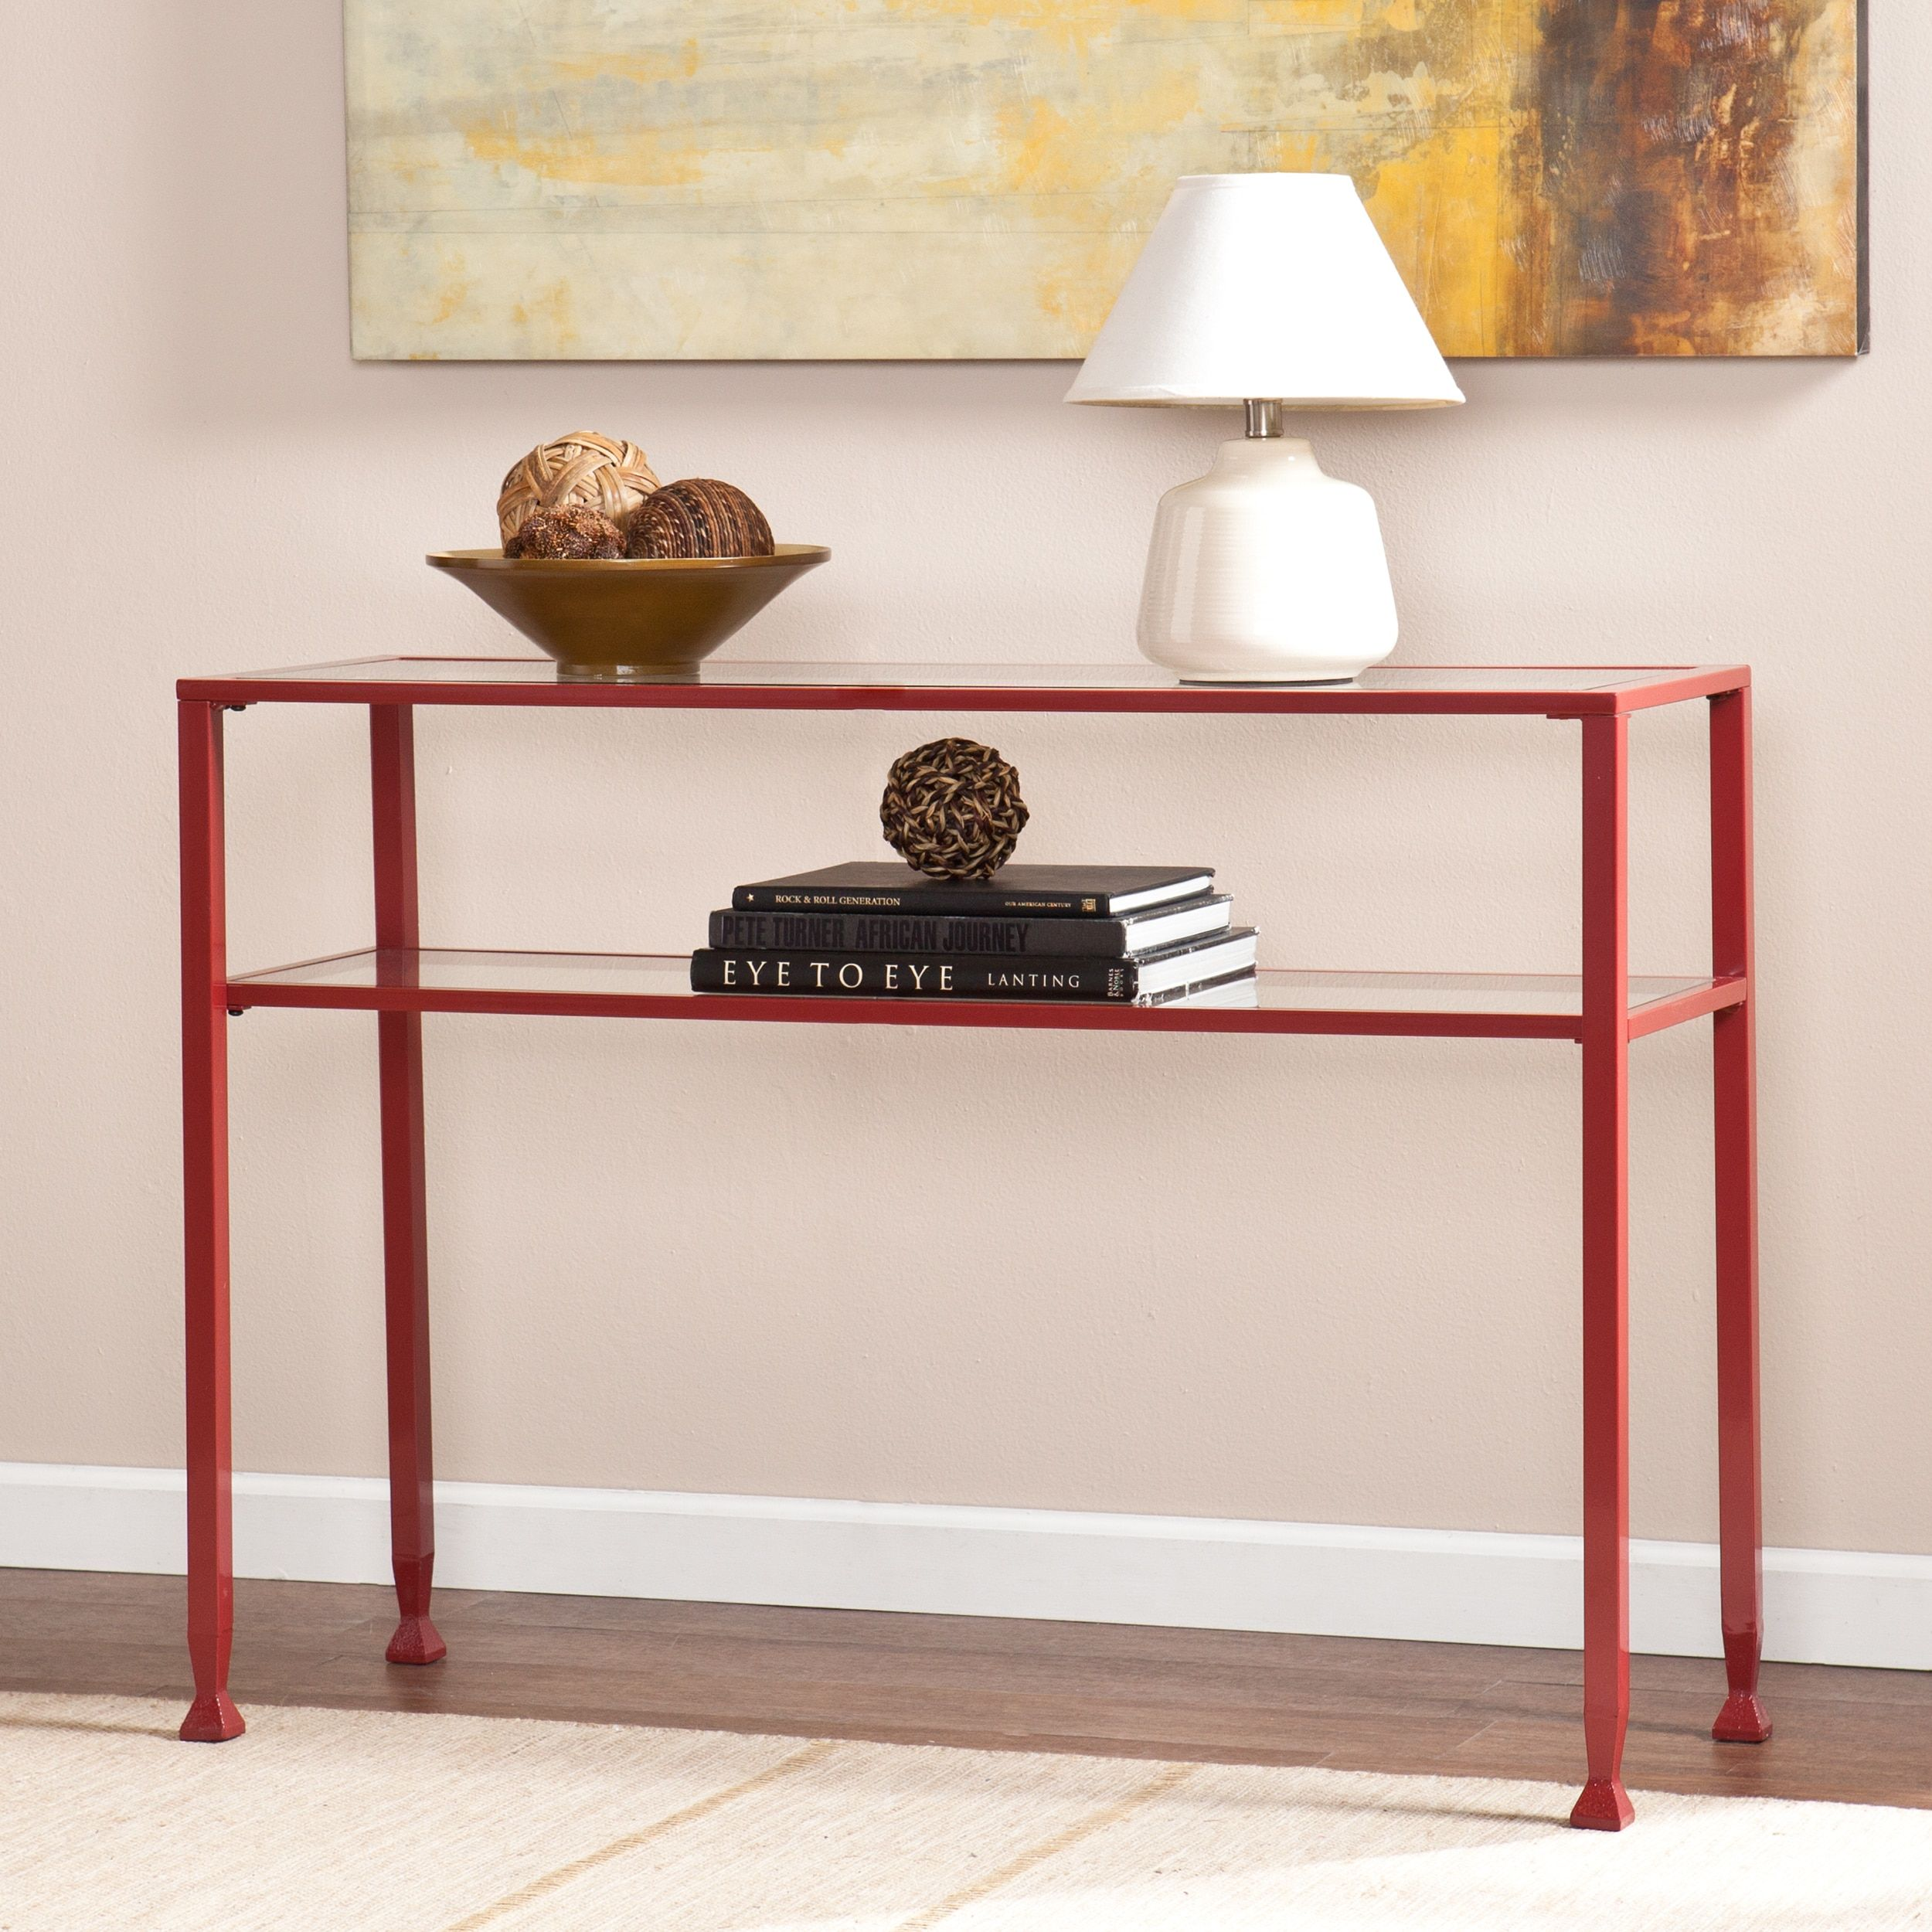 Harper blvd red metal and glass sofa console table 17078415 harper blvd red metal and glass sofa console table 17078415 overstock geotapseo Choice Image